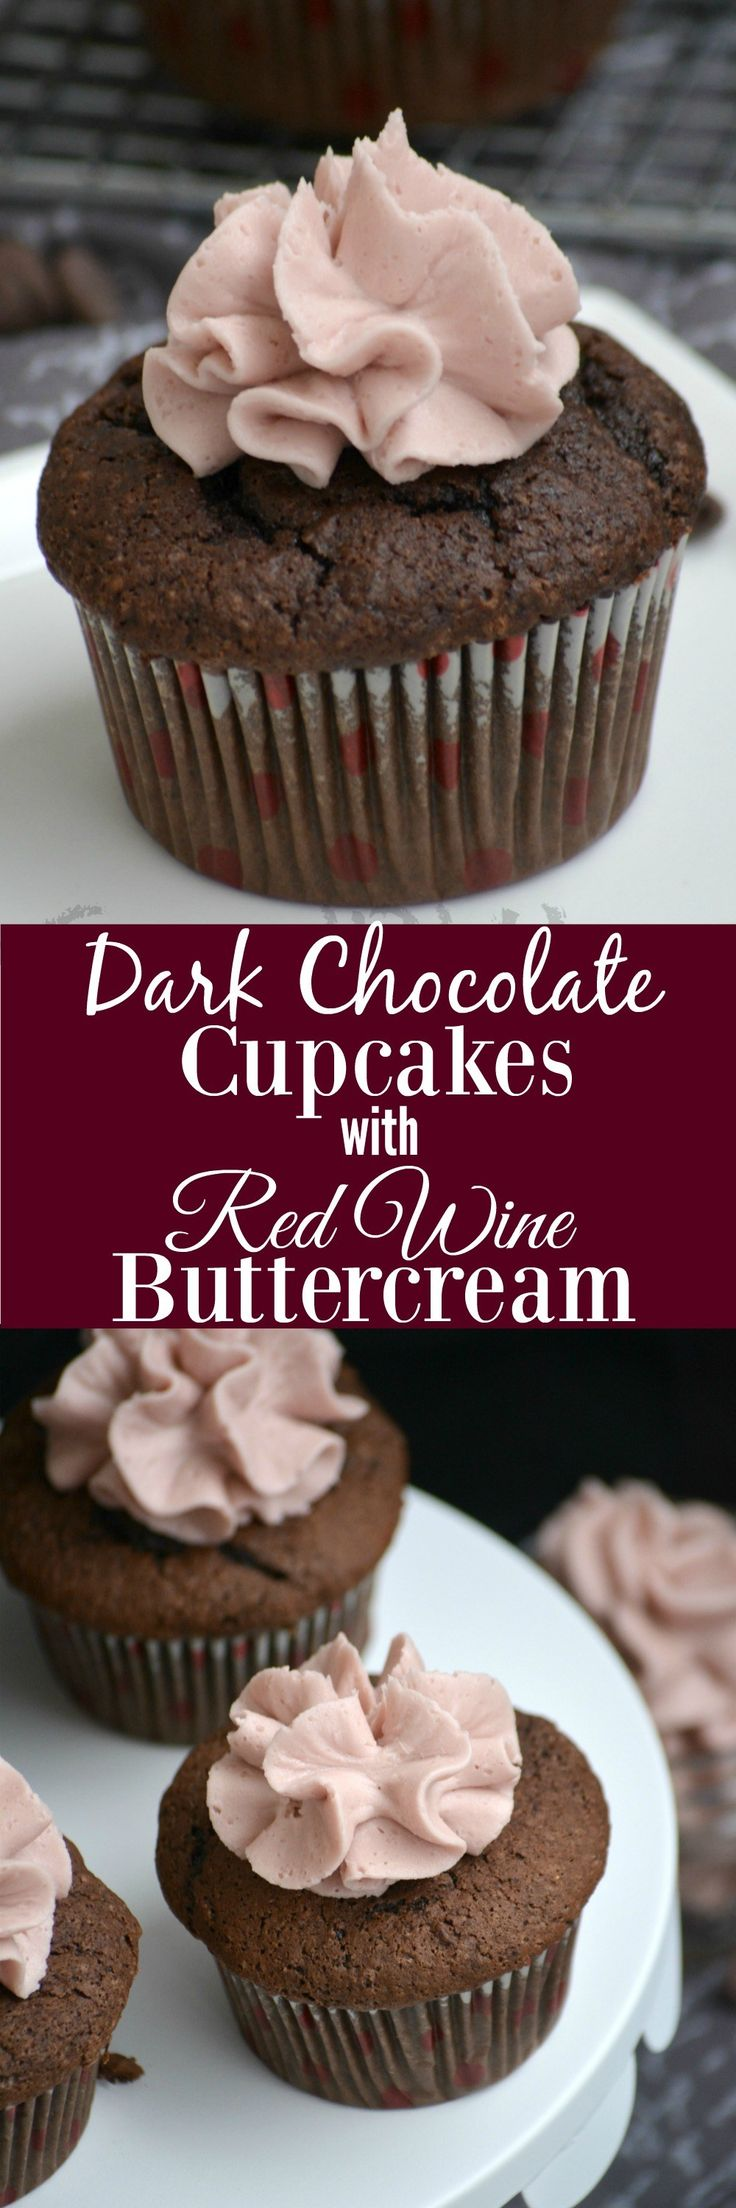 A velvety cupcake topped with a rich and creamy buttercream frosting is always a treat. These Dark Chocolate Cupcakes with Red Wine Buttercream are the perfect something sweet for sharing with someone special in your life.